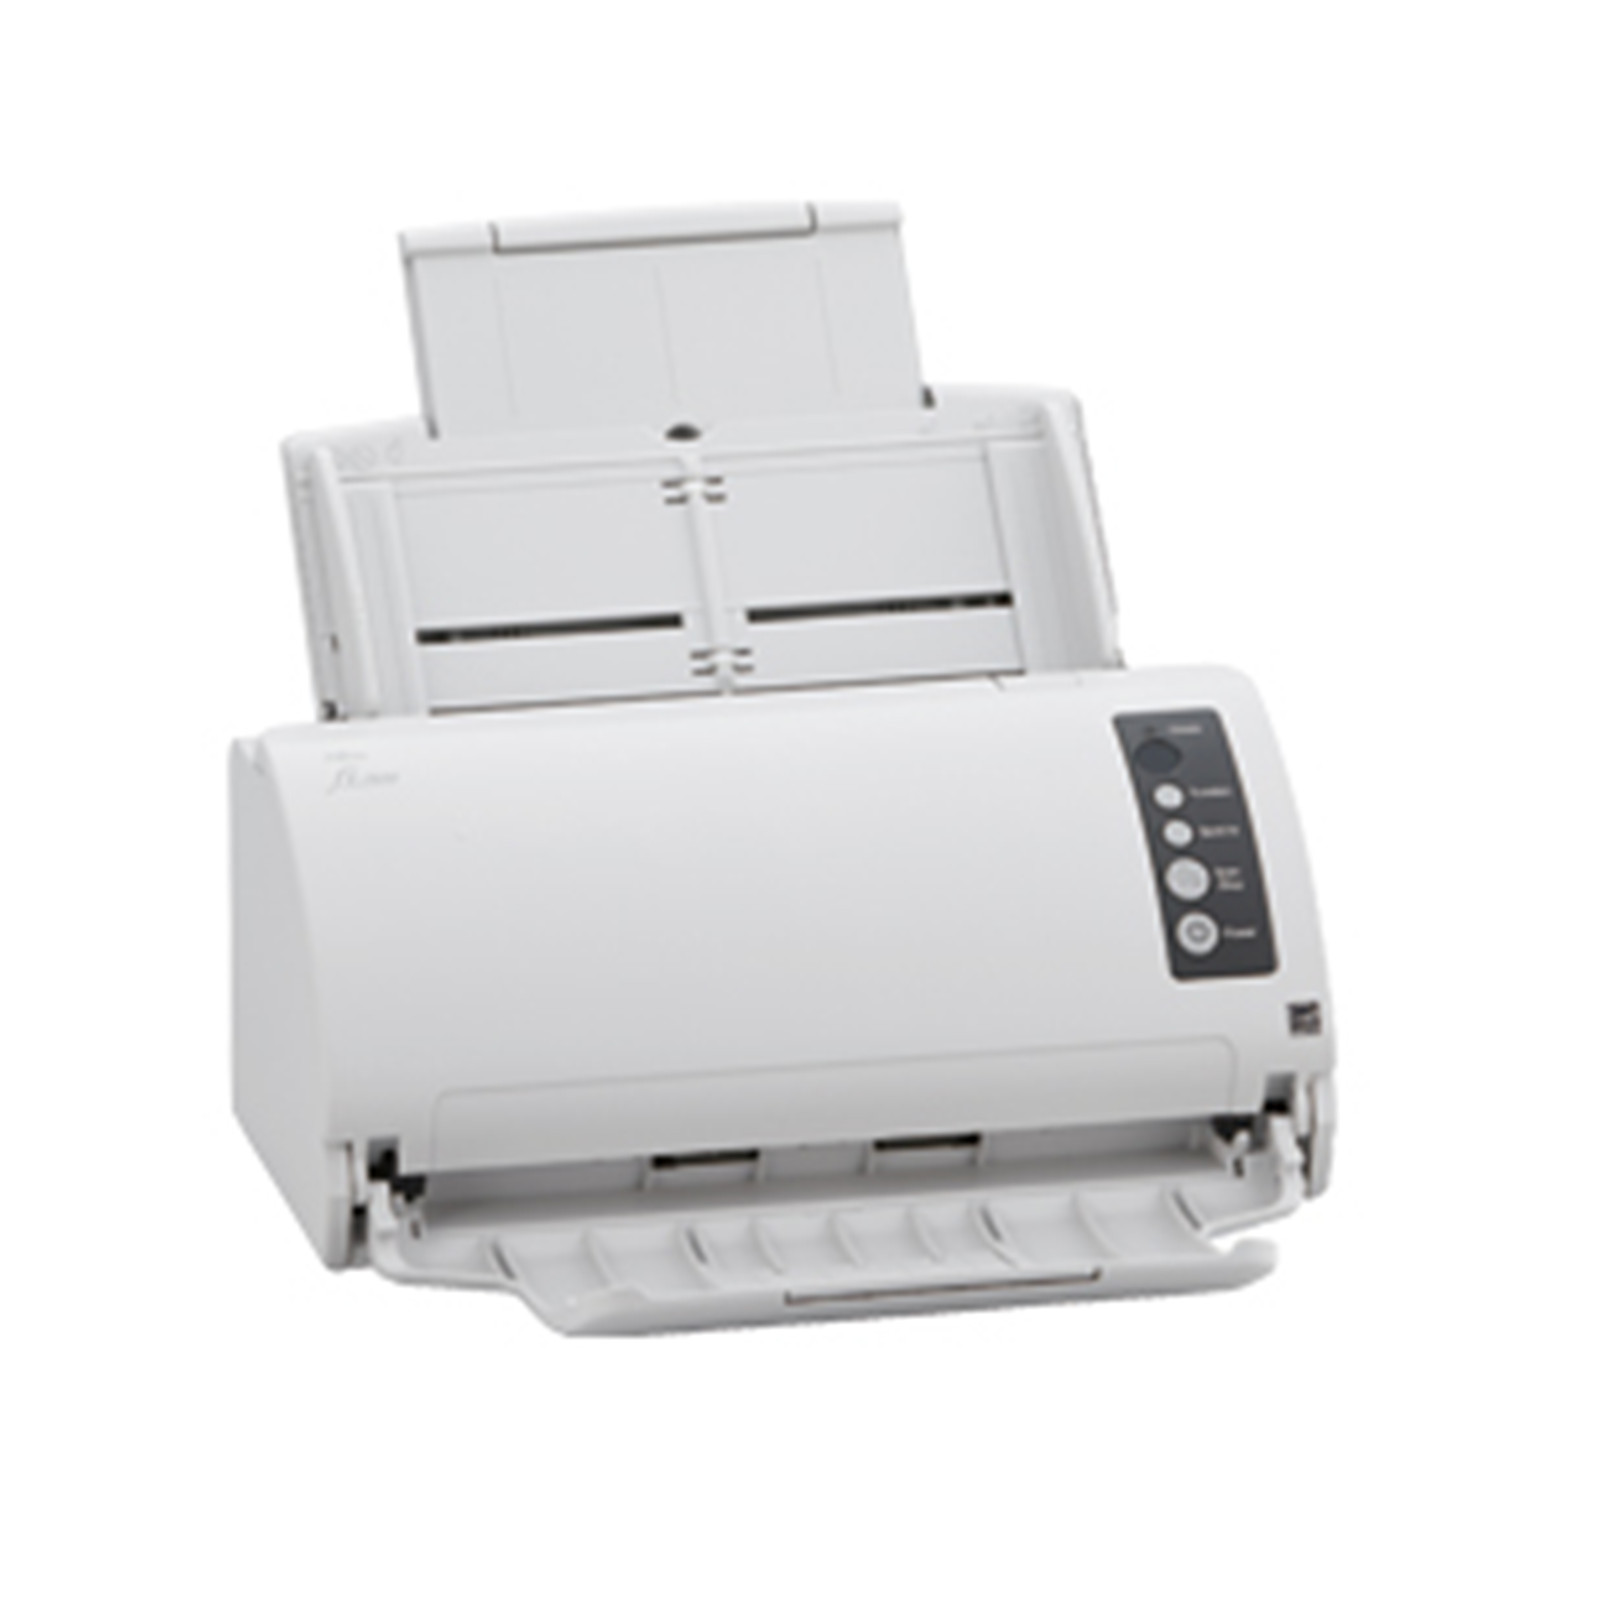 Fujitsu fi-7030 A4 Document Scanner a 50 page ADF 27 ppm / 54 ipm in duplex mode